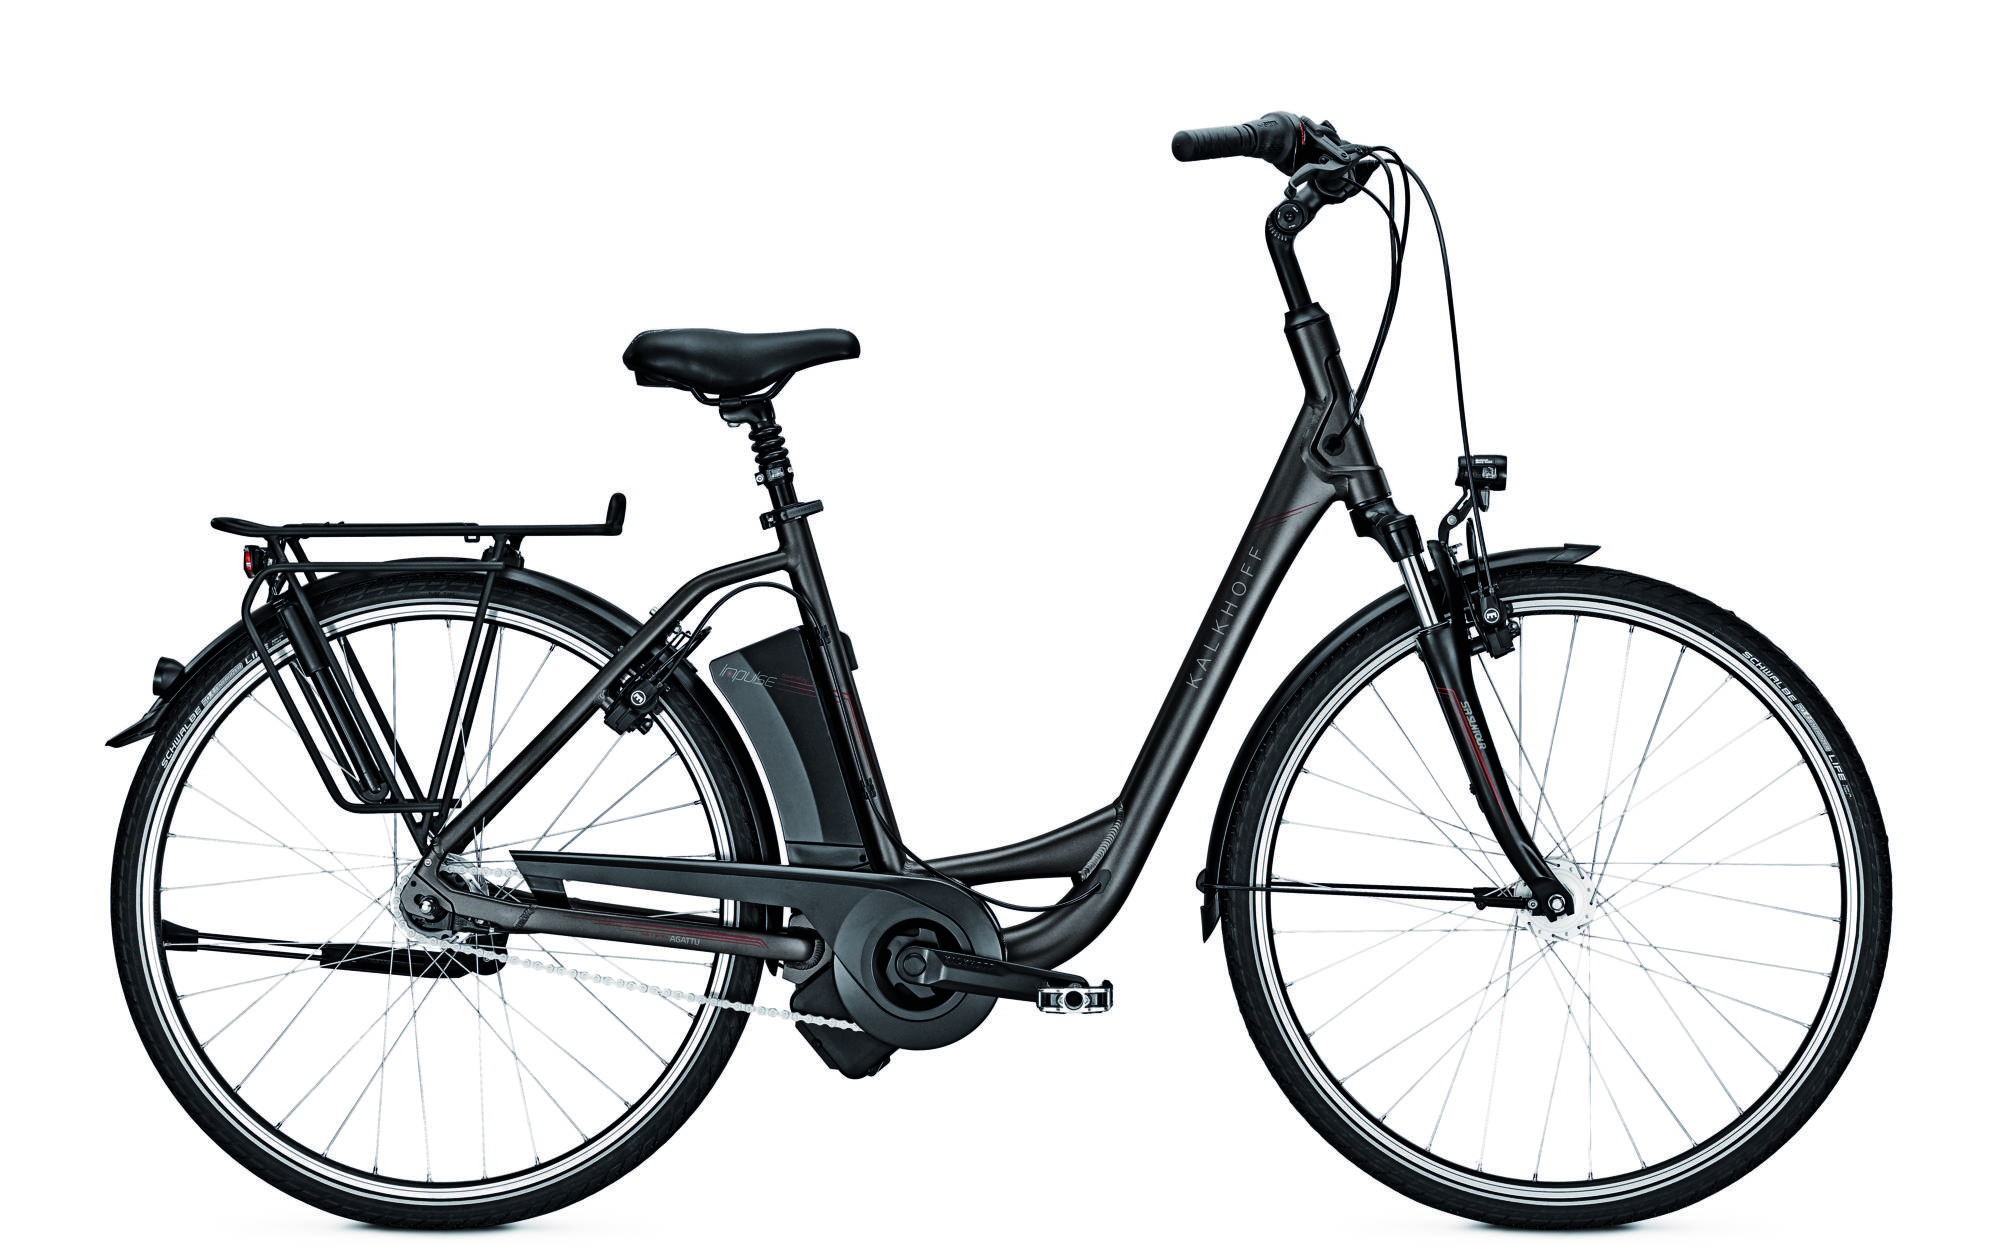 e bike kalkhoff agattu i7 hs 17 0 ah 26 zoll 7g wave freilauf atlasgrey rh 46 ausverkaufte artikel. Black Bedroom Furniture Sets. Home Design Ideas